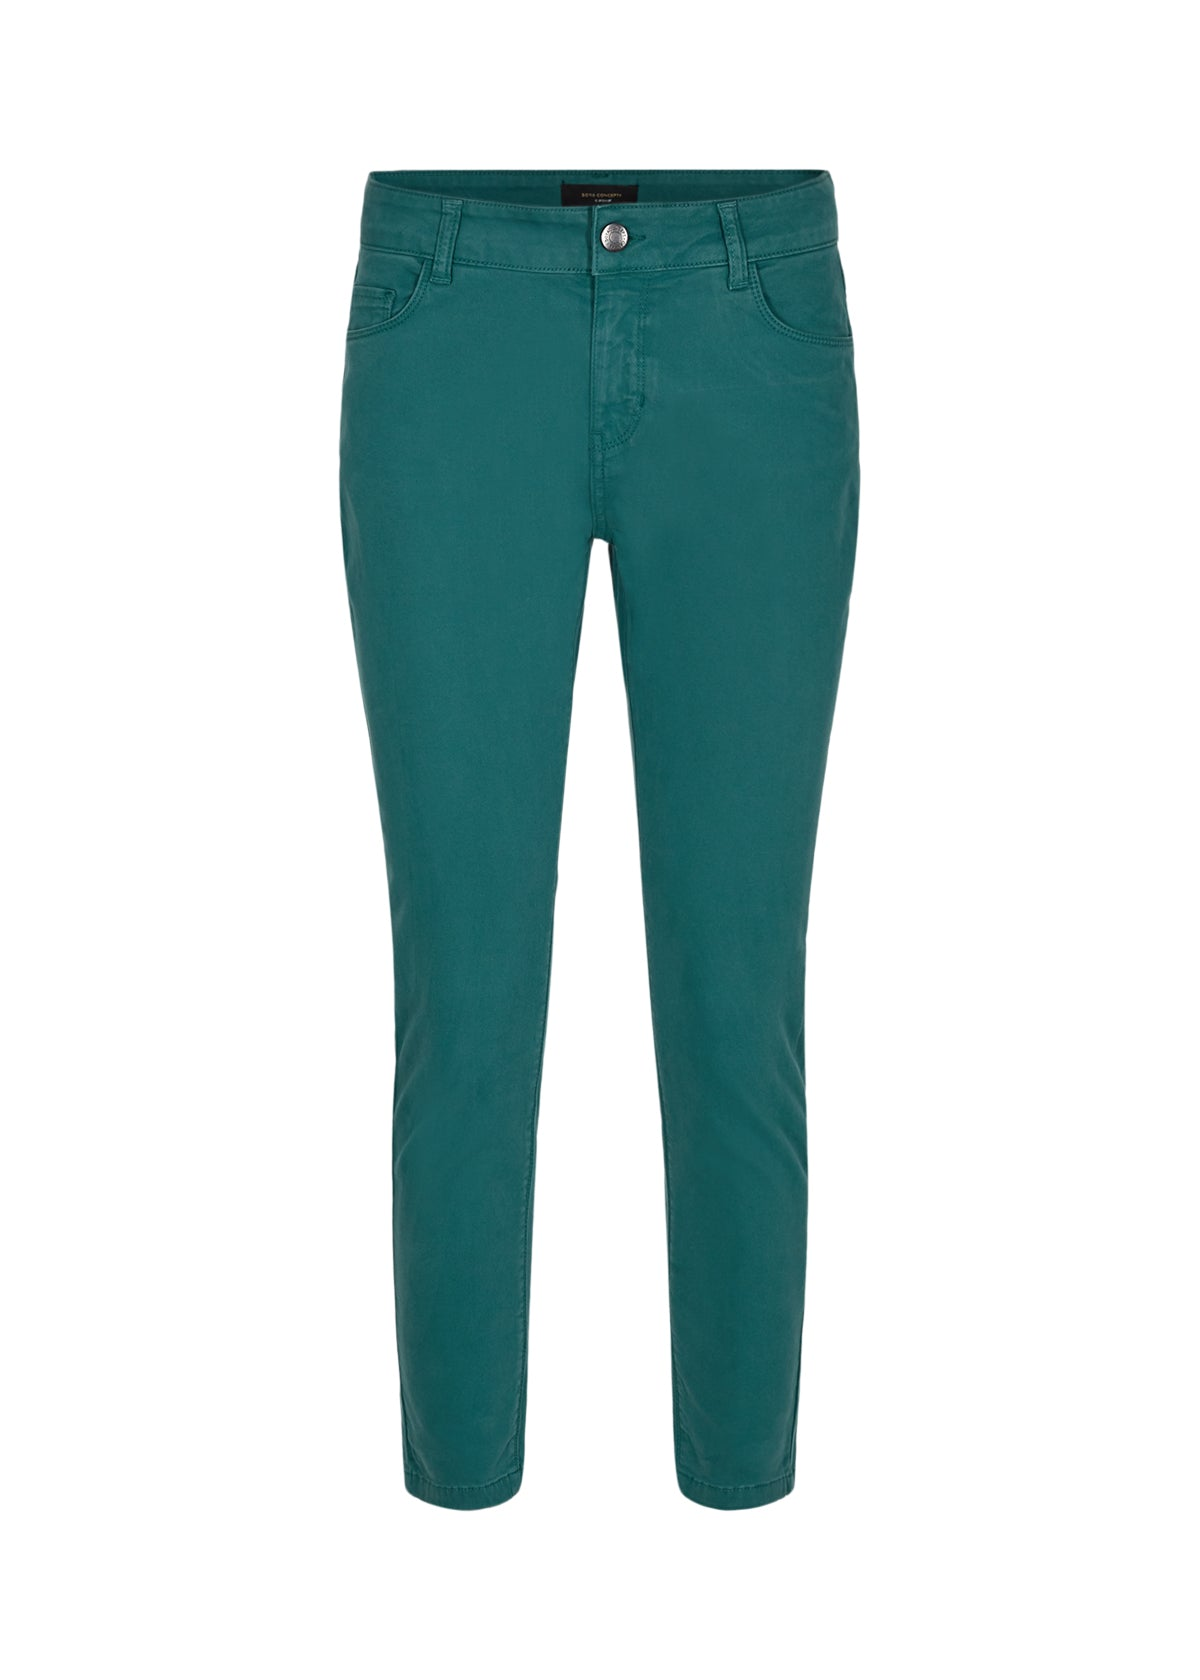 SOYA CONCEPT - JEANS - 7904 DEEP GREEN